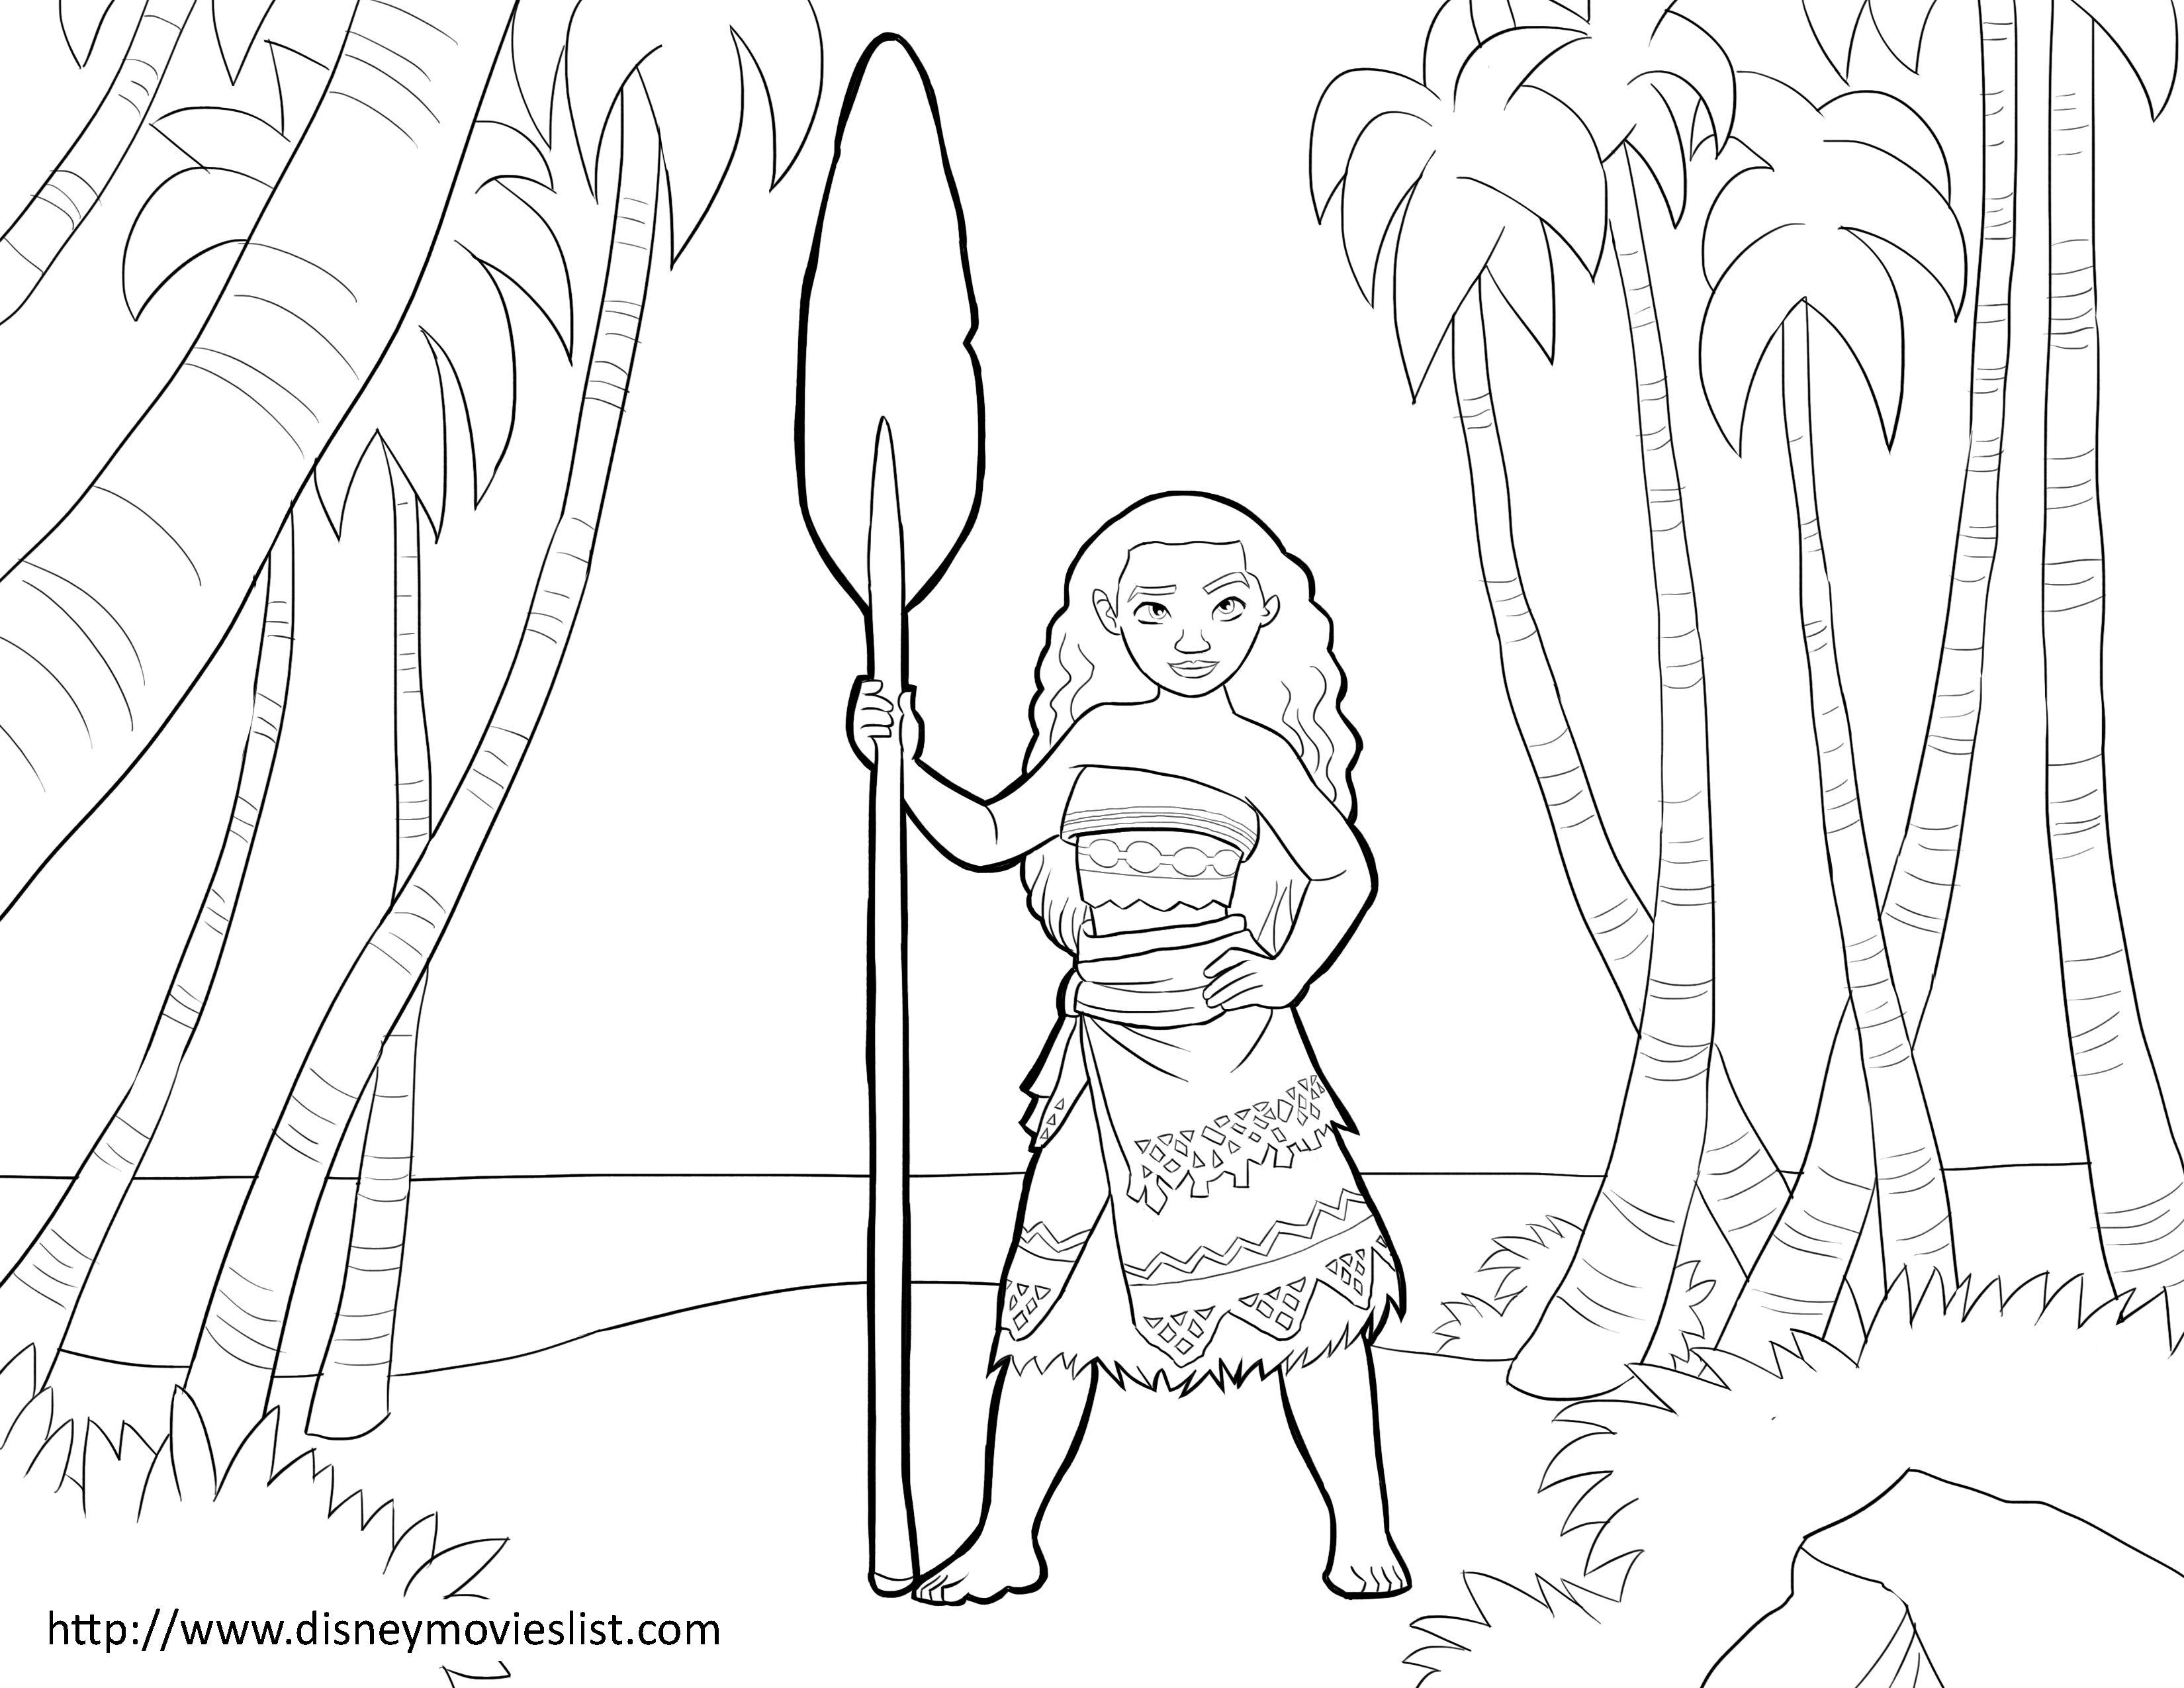 Moana Coloring Page Printable Moana Coloring Sheet Moana Coloring Pages Moana Coloring Disney Princess Coloring Pages